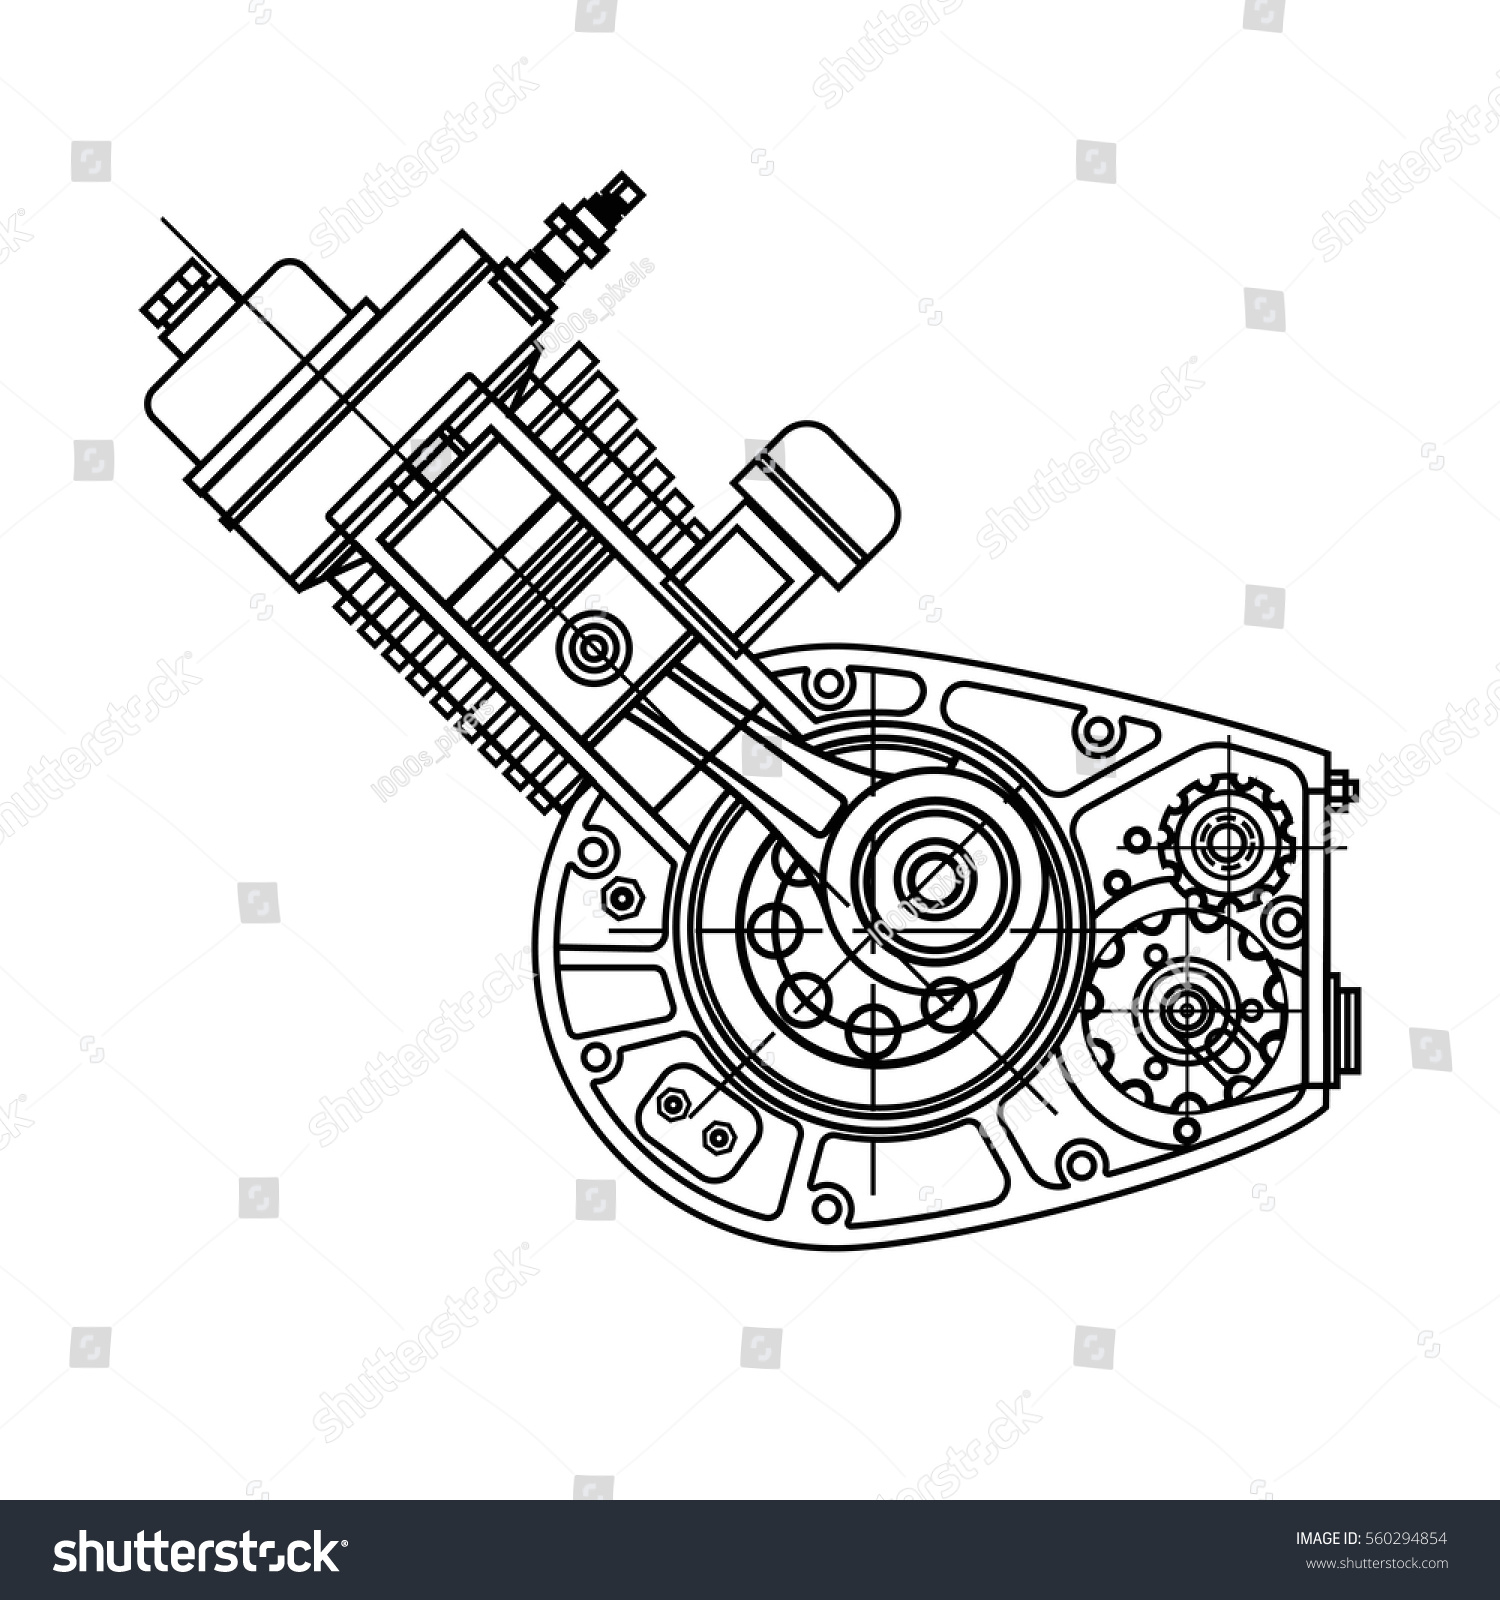 drawing internal bustion motocycle engine isolated stock vector Component Parts of Internal Combustion Engines drawing an internal bustion motocycle engine isolated in black background it can be used as